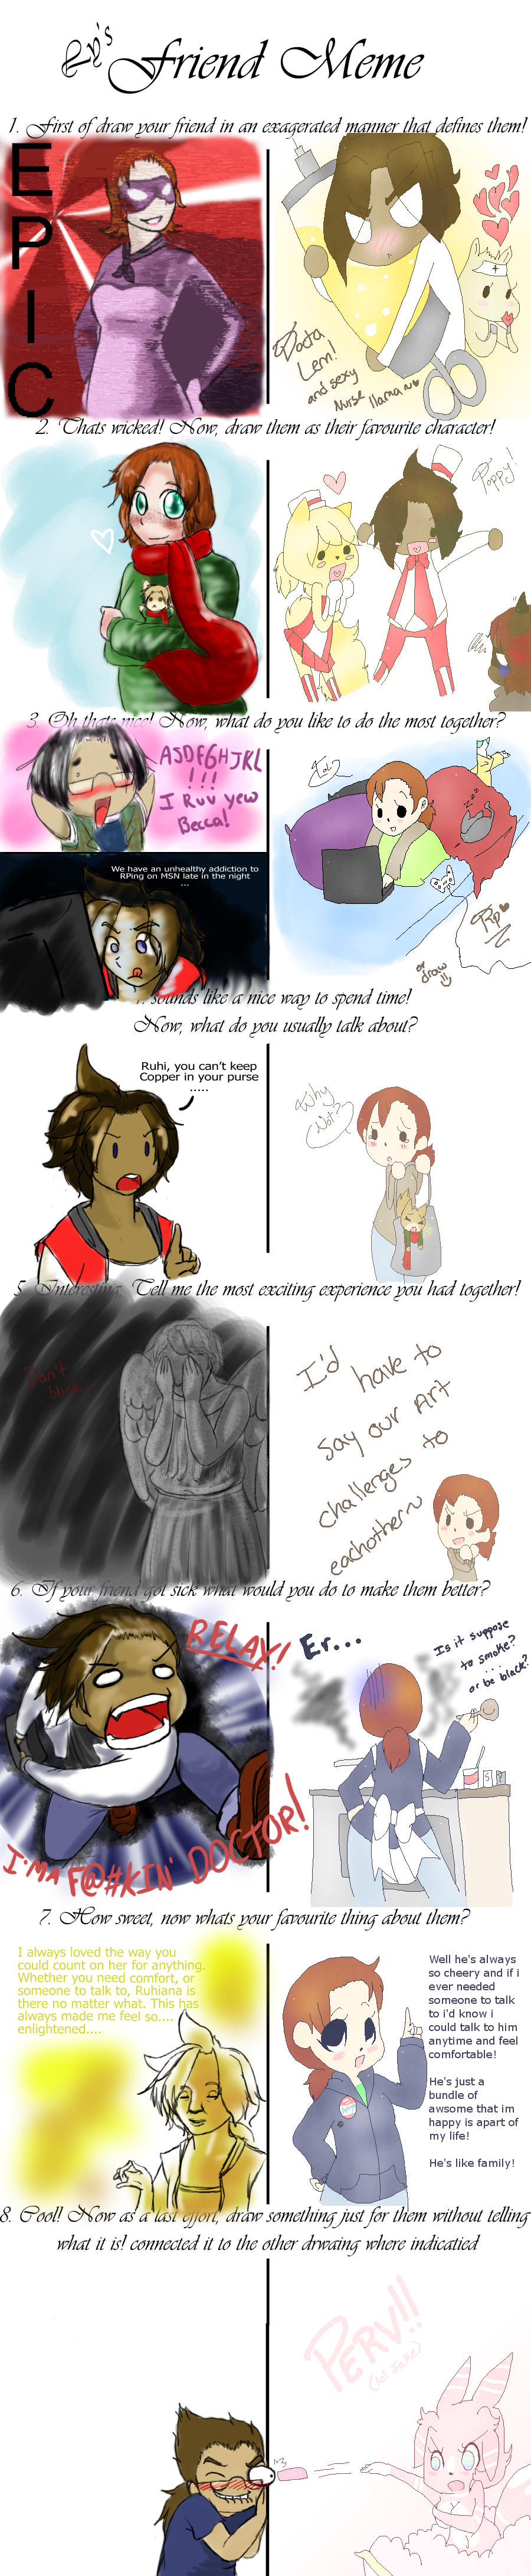 FRIENDSHIP MEMESSSSS by Ruhianna